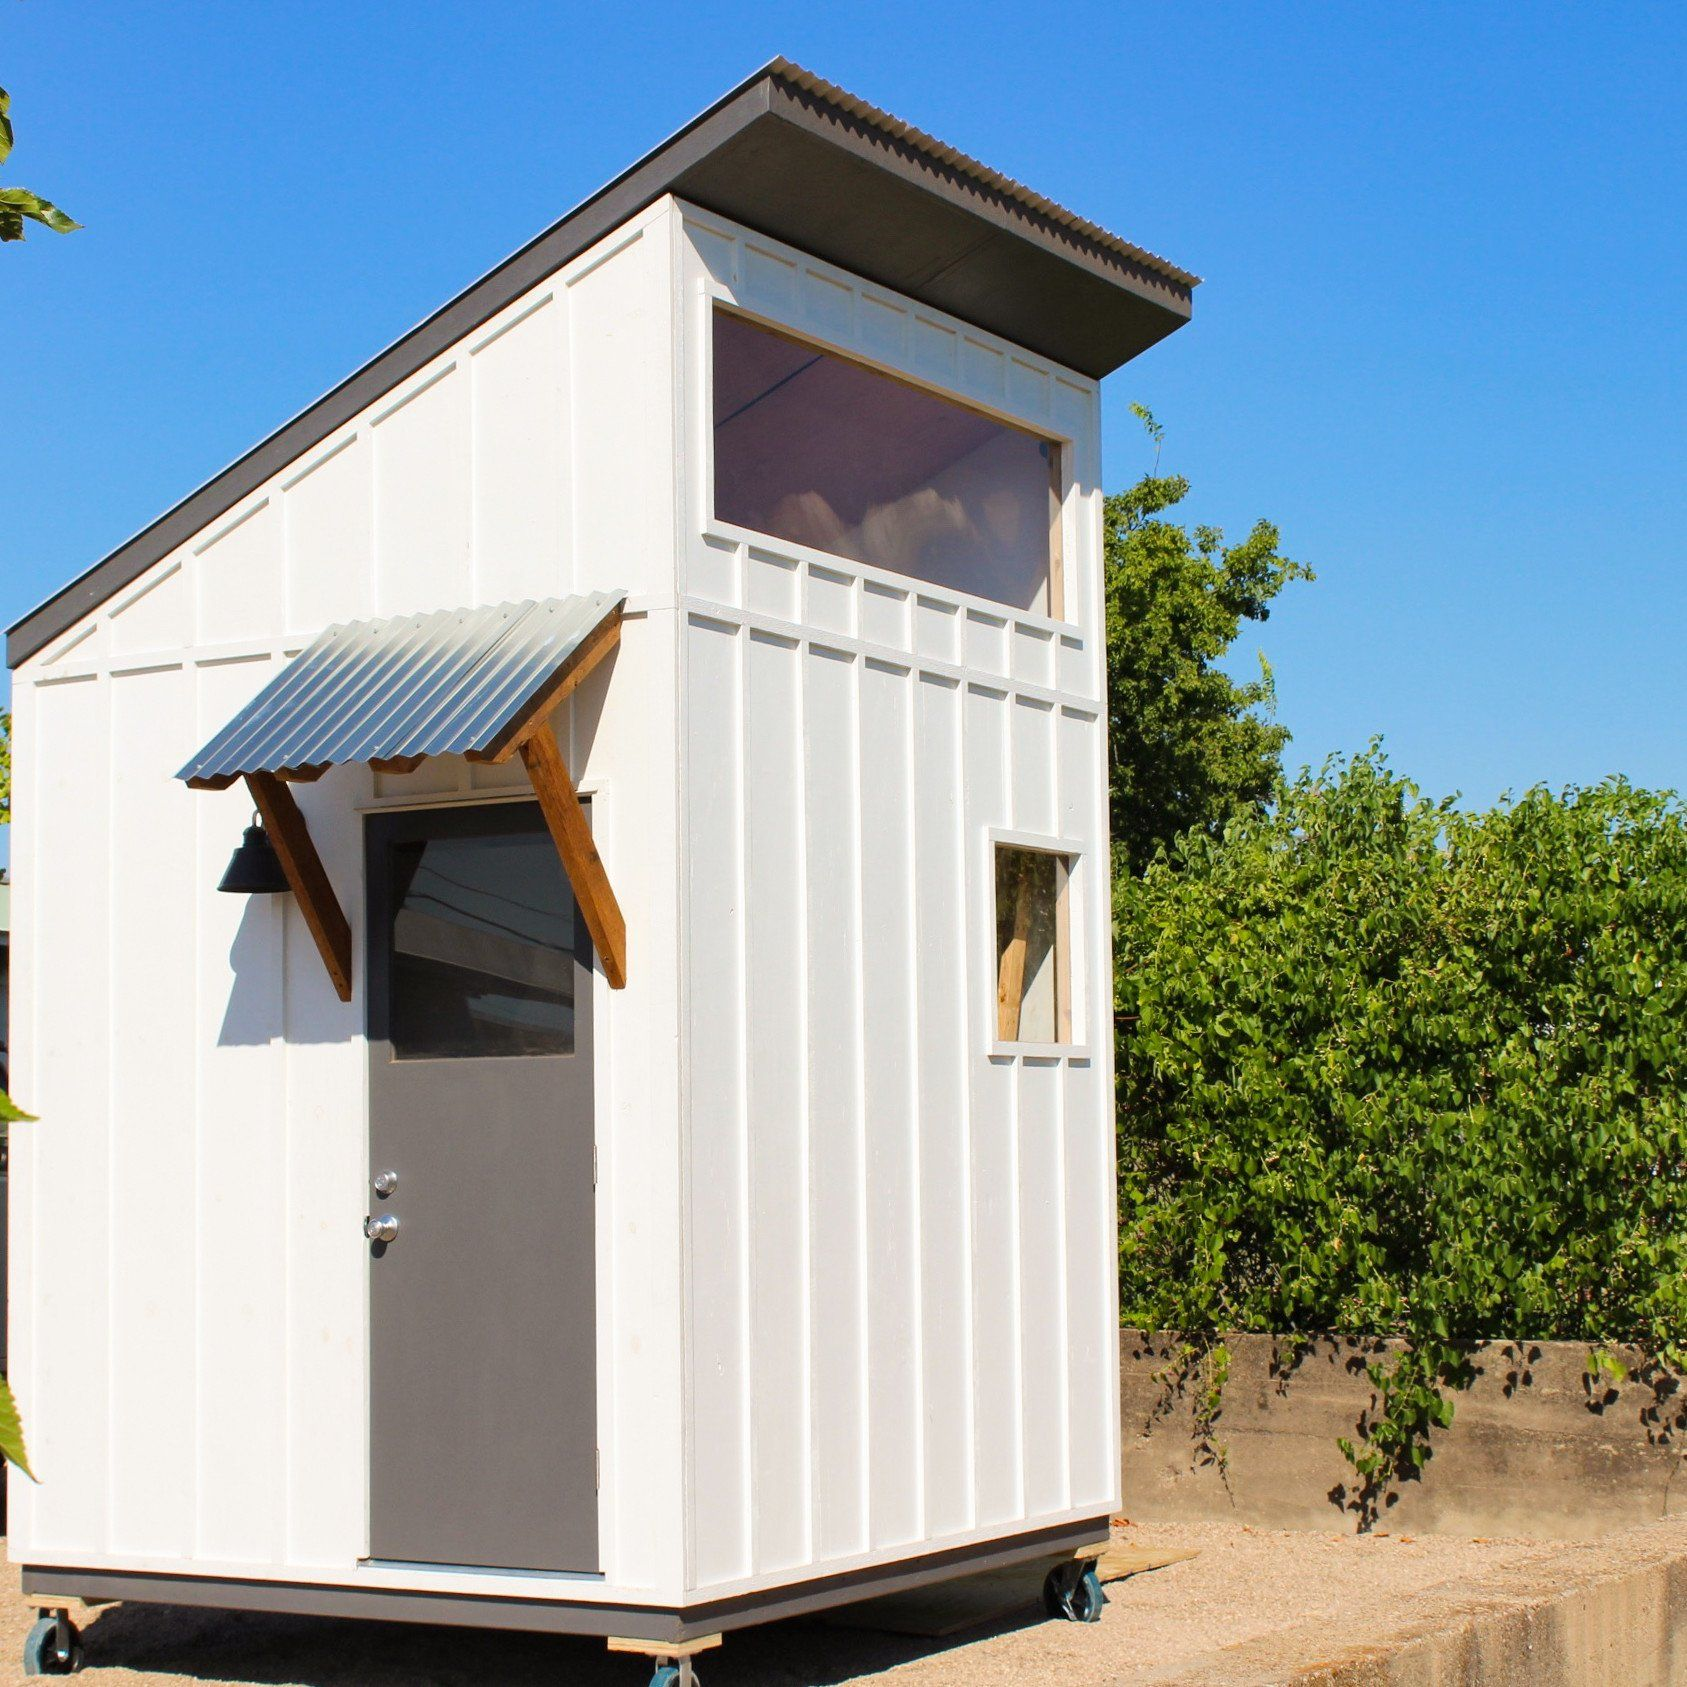 Image Result For Flat Pack Tiny Home Cheap Tiny House Tiny House Appliances Tiny Houses For Sale